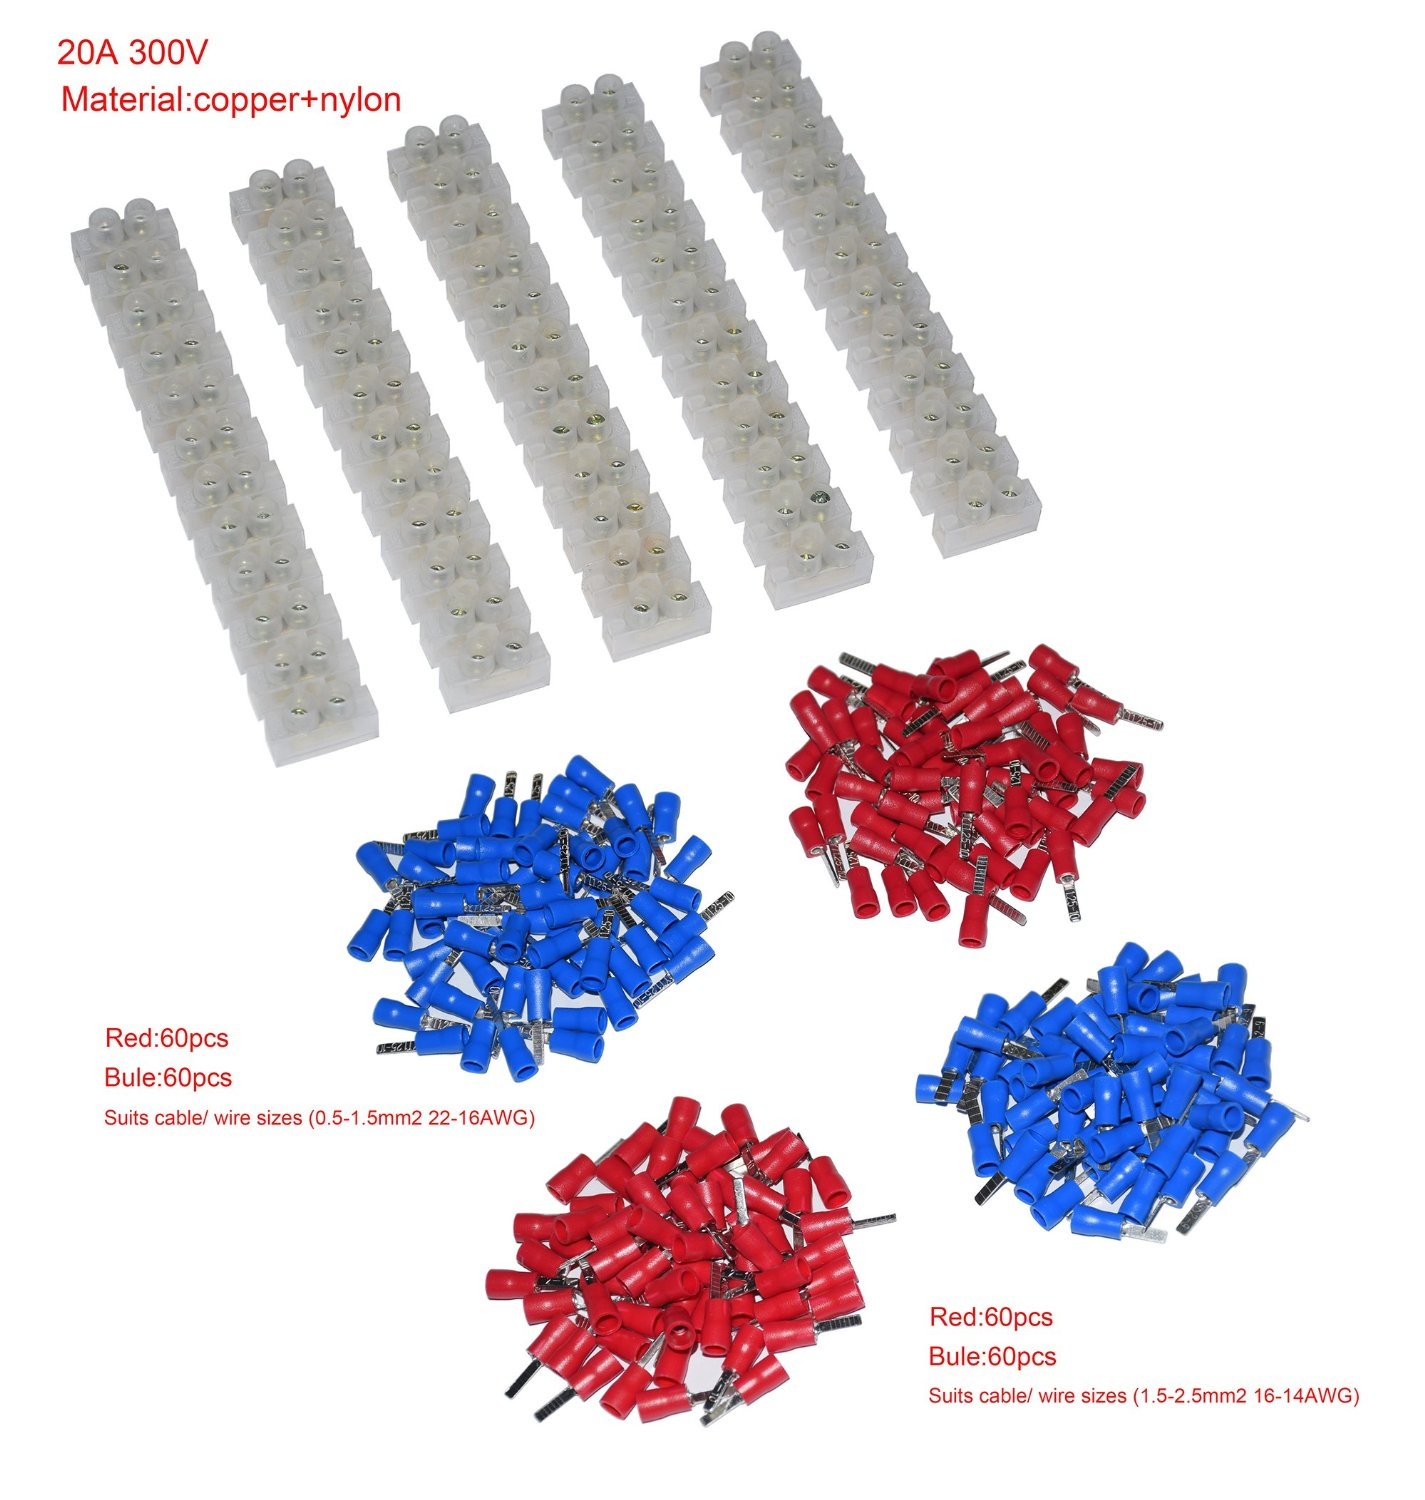 5Pcs 2 Rows 12P Wire Connector Screw Terminal Barrier Block 300V 20A + Insulated Electrical Wire Connector: (22-16 AWG Red/Blue 120 Pcs + 16-14 AWG Red/Blue 120 Pcs)